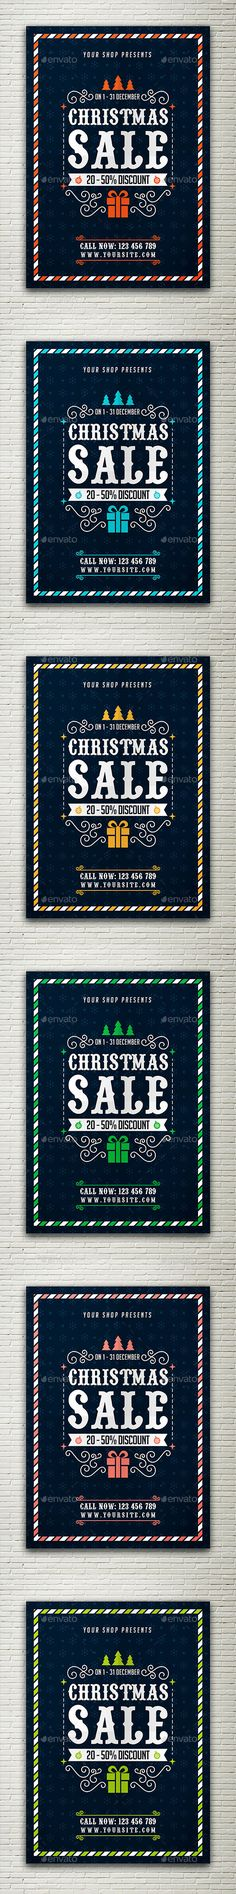 Christmas Sale Flyer Christmas Sale, Christmas And New Year, Computer Science Projects, Christmas Flyer Template, Event Flyer Templates, Sale Flyer, New Years Sales, Xmas Holidays, Shopping